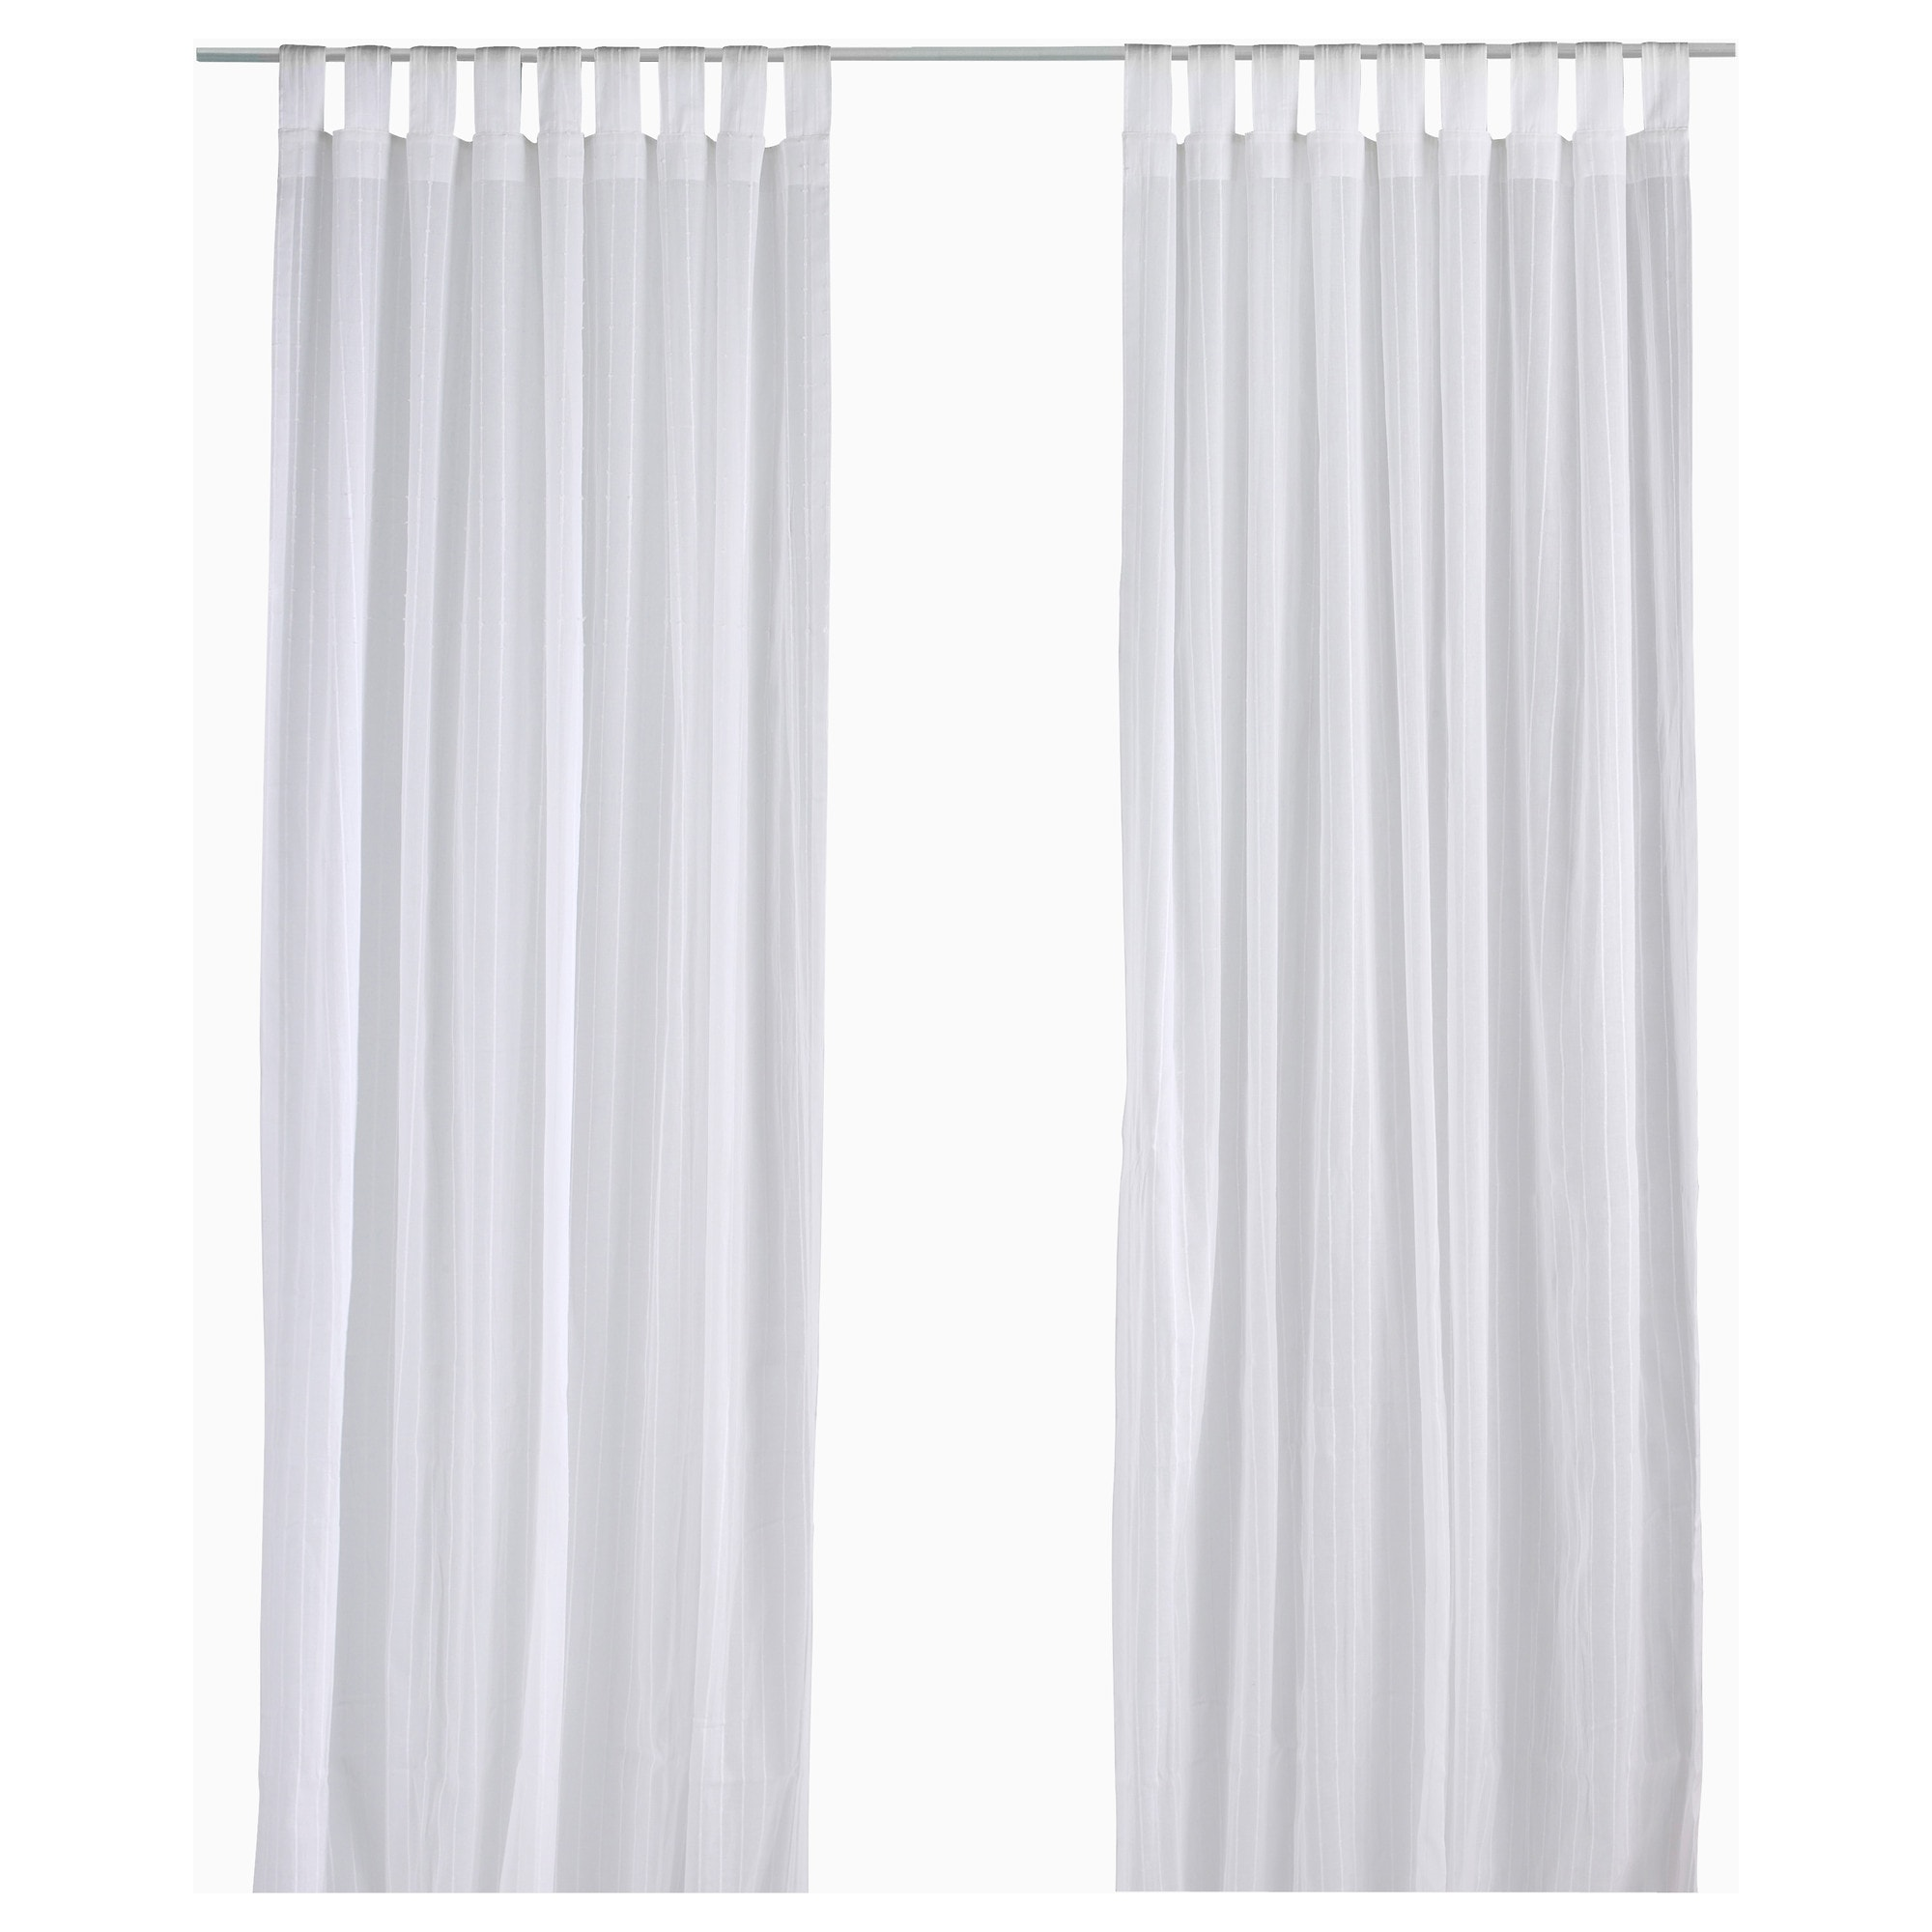 White curtain panels - Matilda Sheer Curtains 1 Pair White Length 98 Width 55